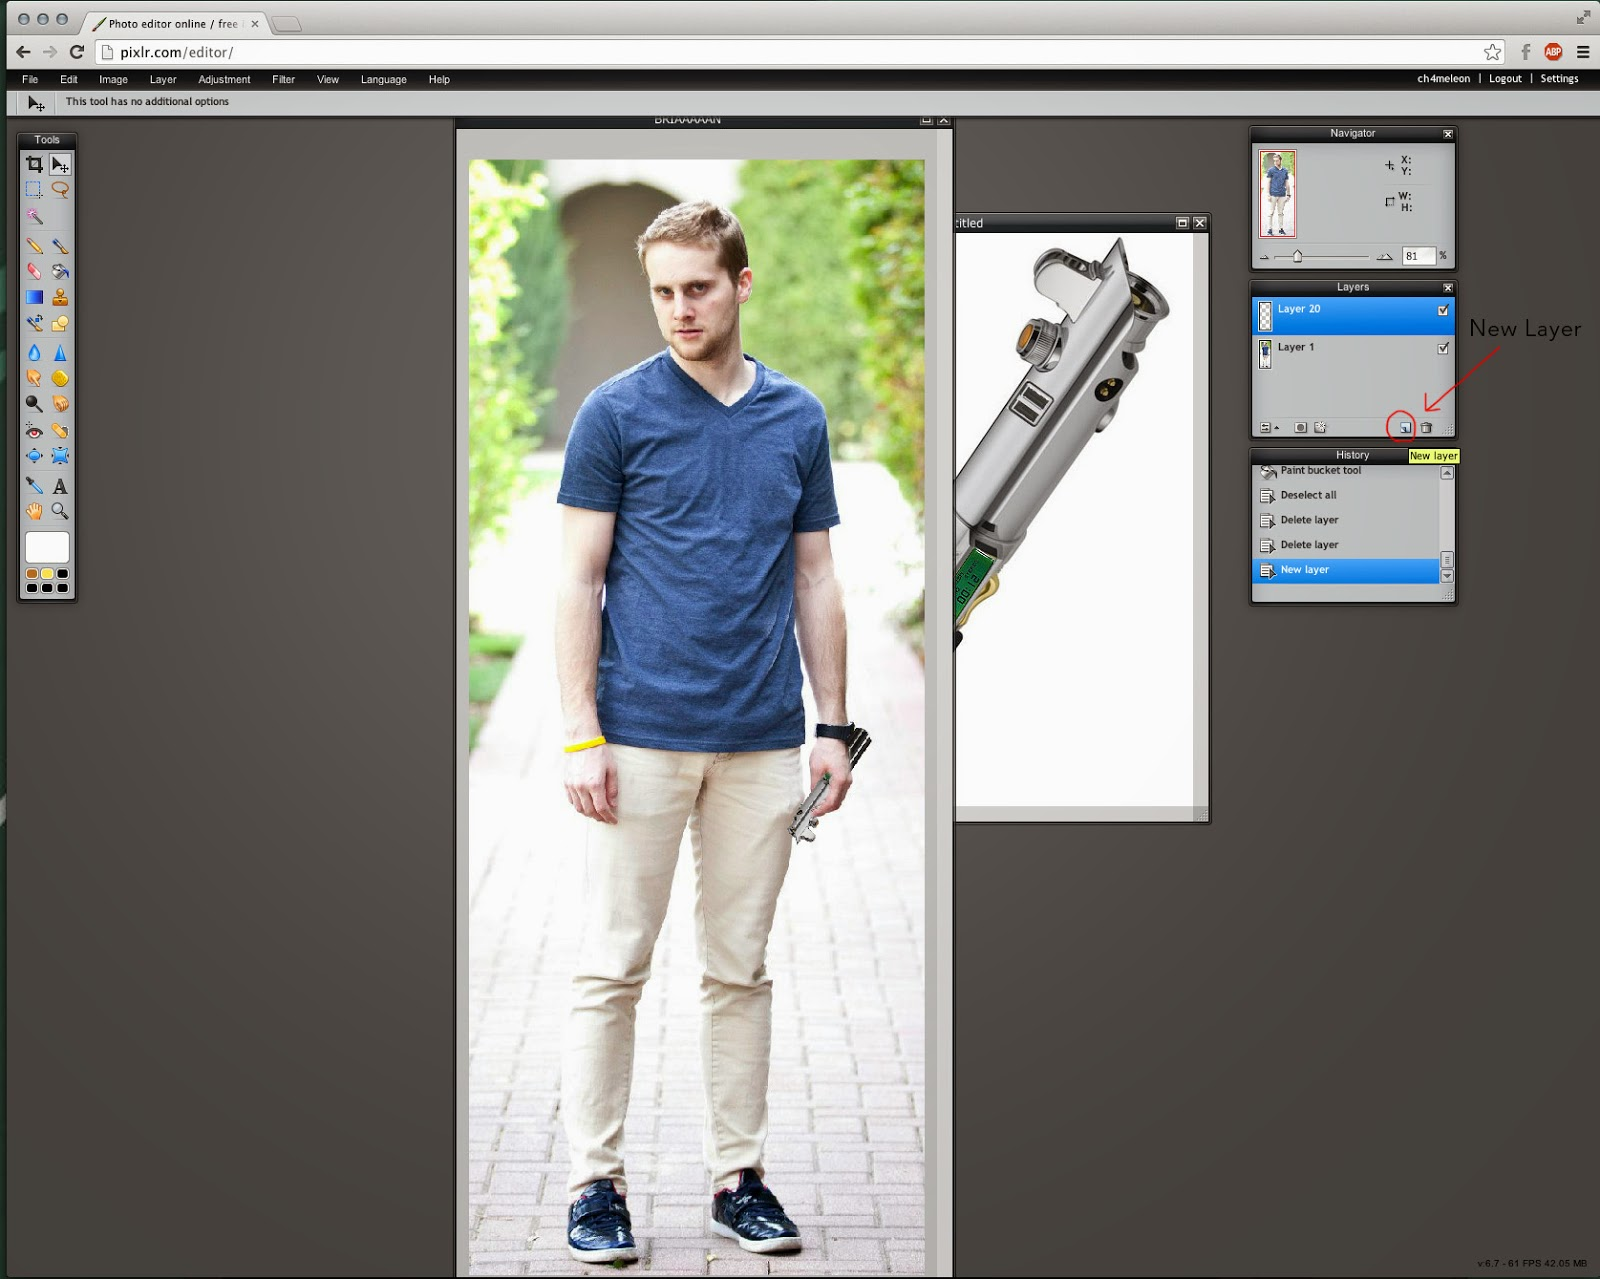 How To Make A Lightsaber Using Pixlr Brian On Star Wars